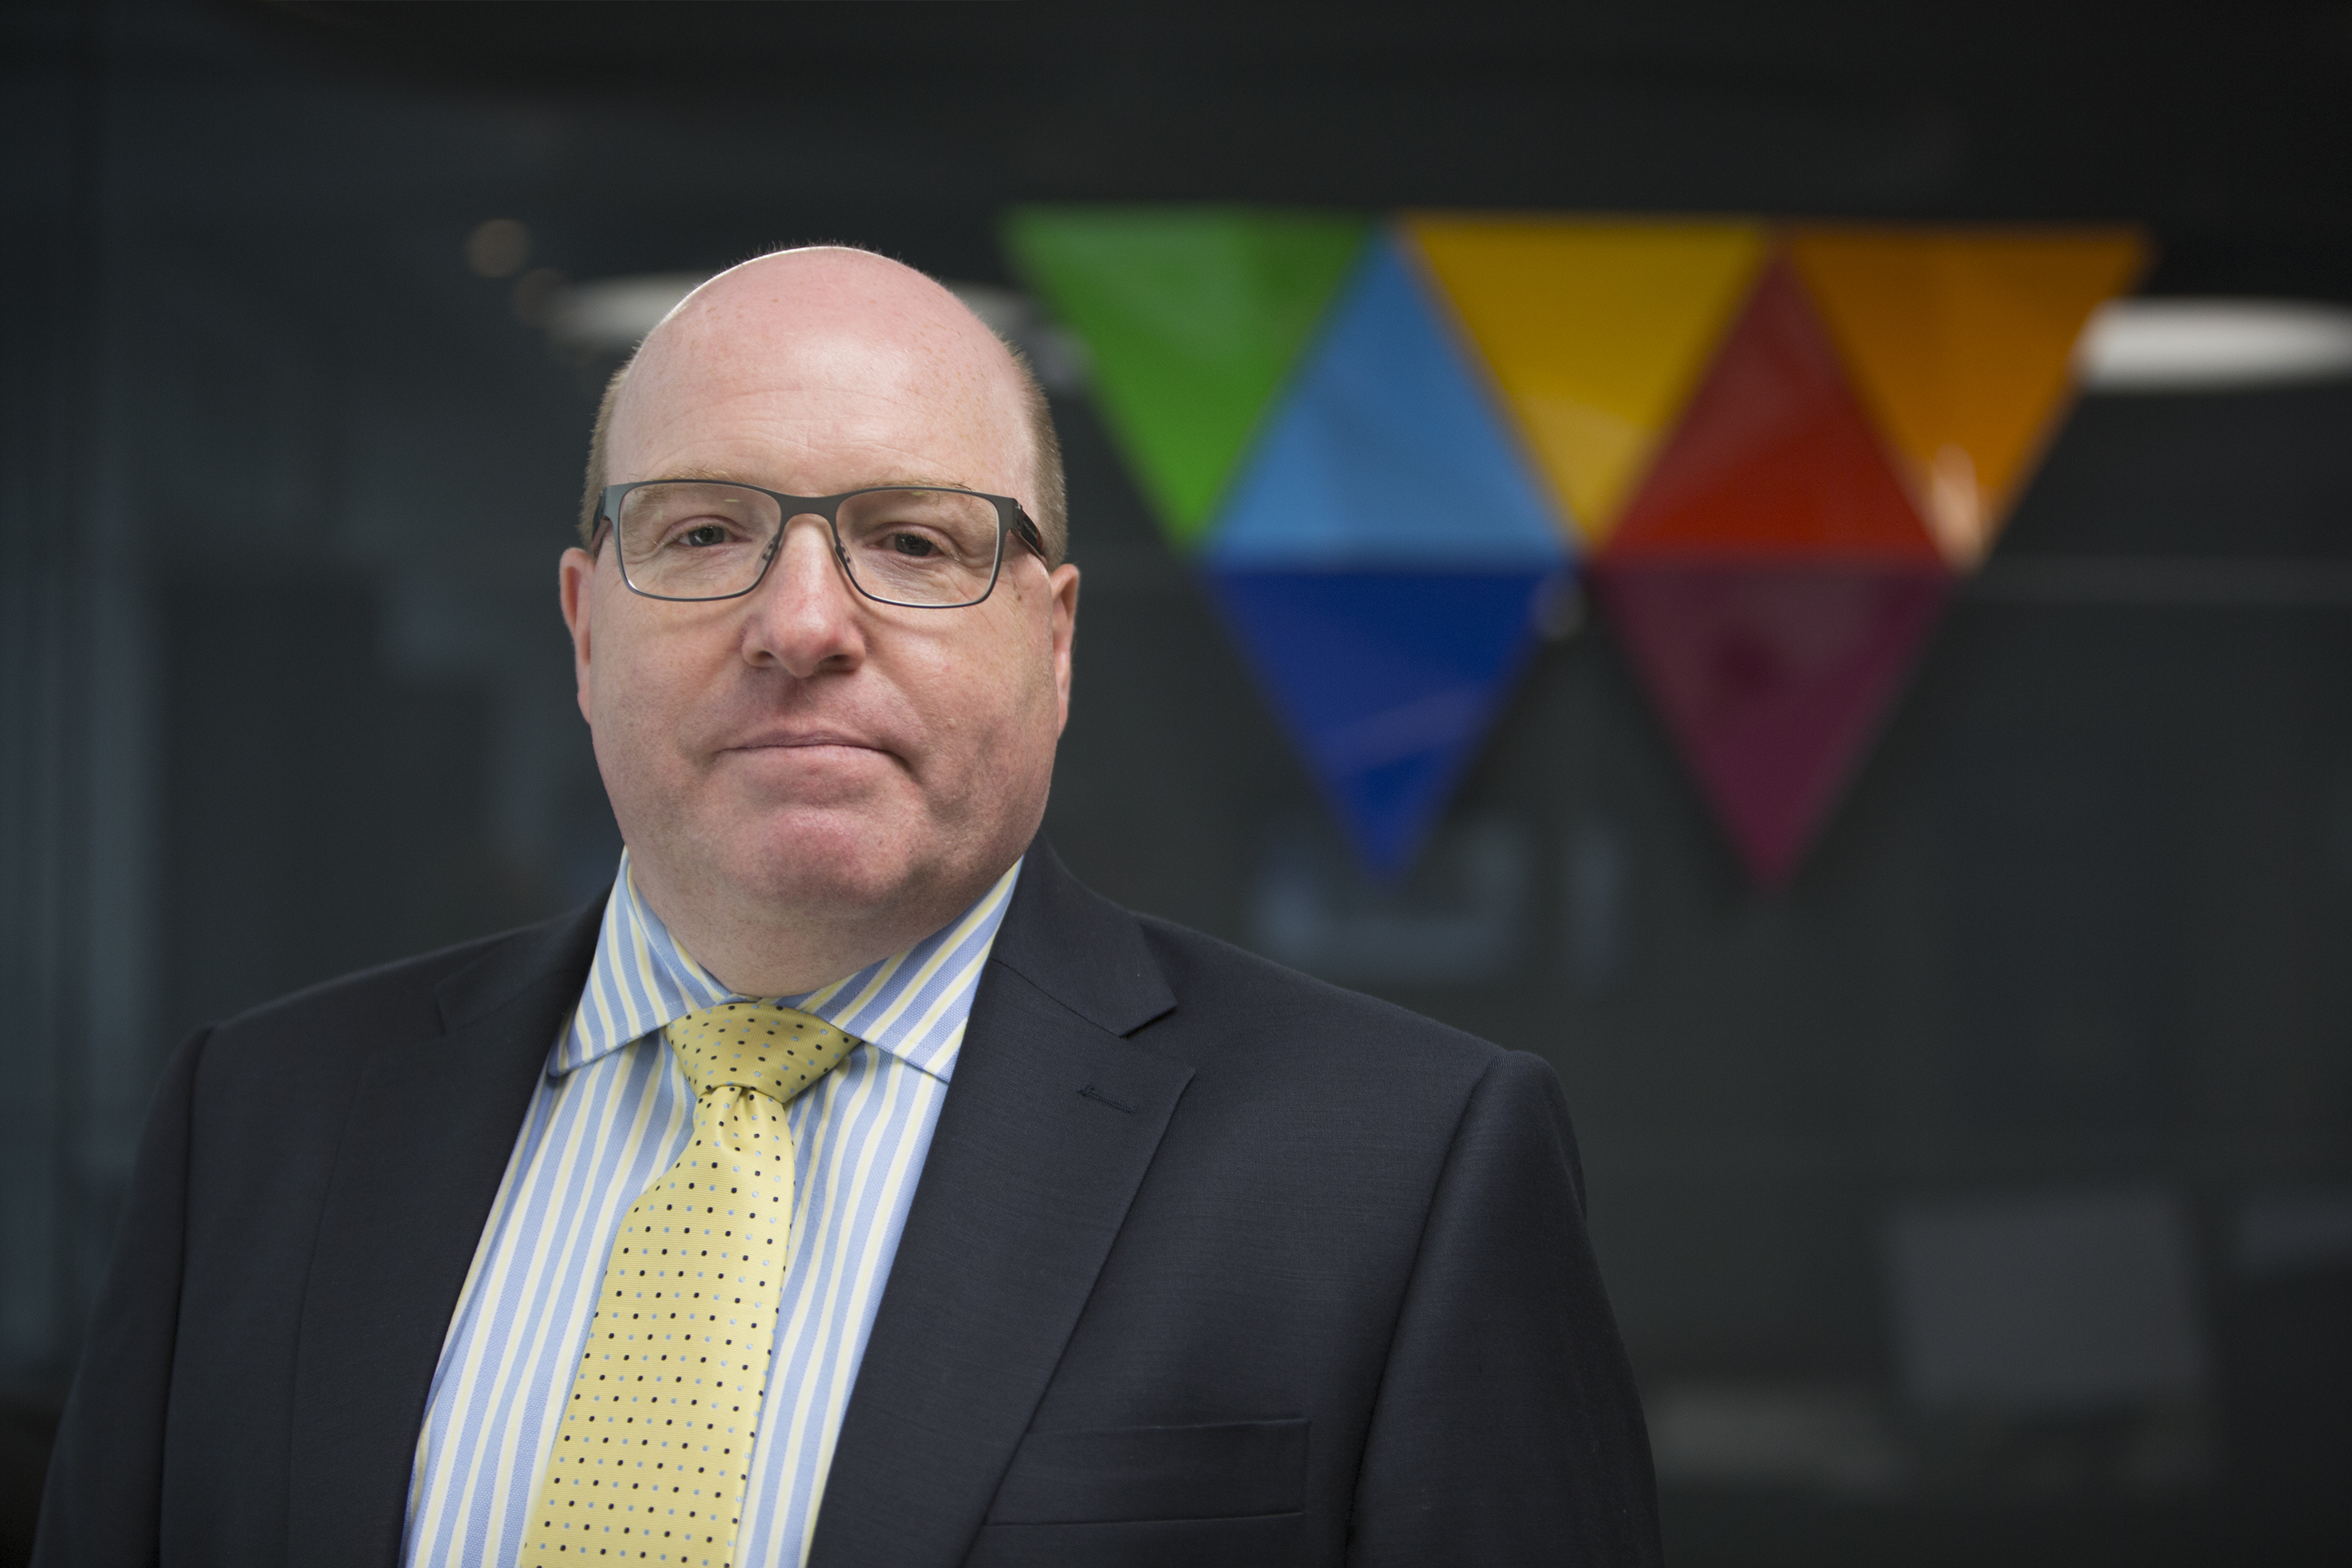 Wood Group's outgoing chief executive Bob Keiller